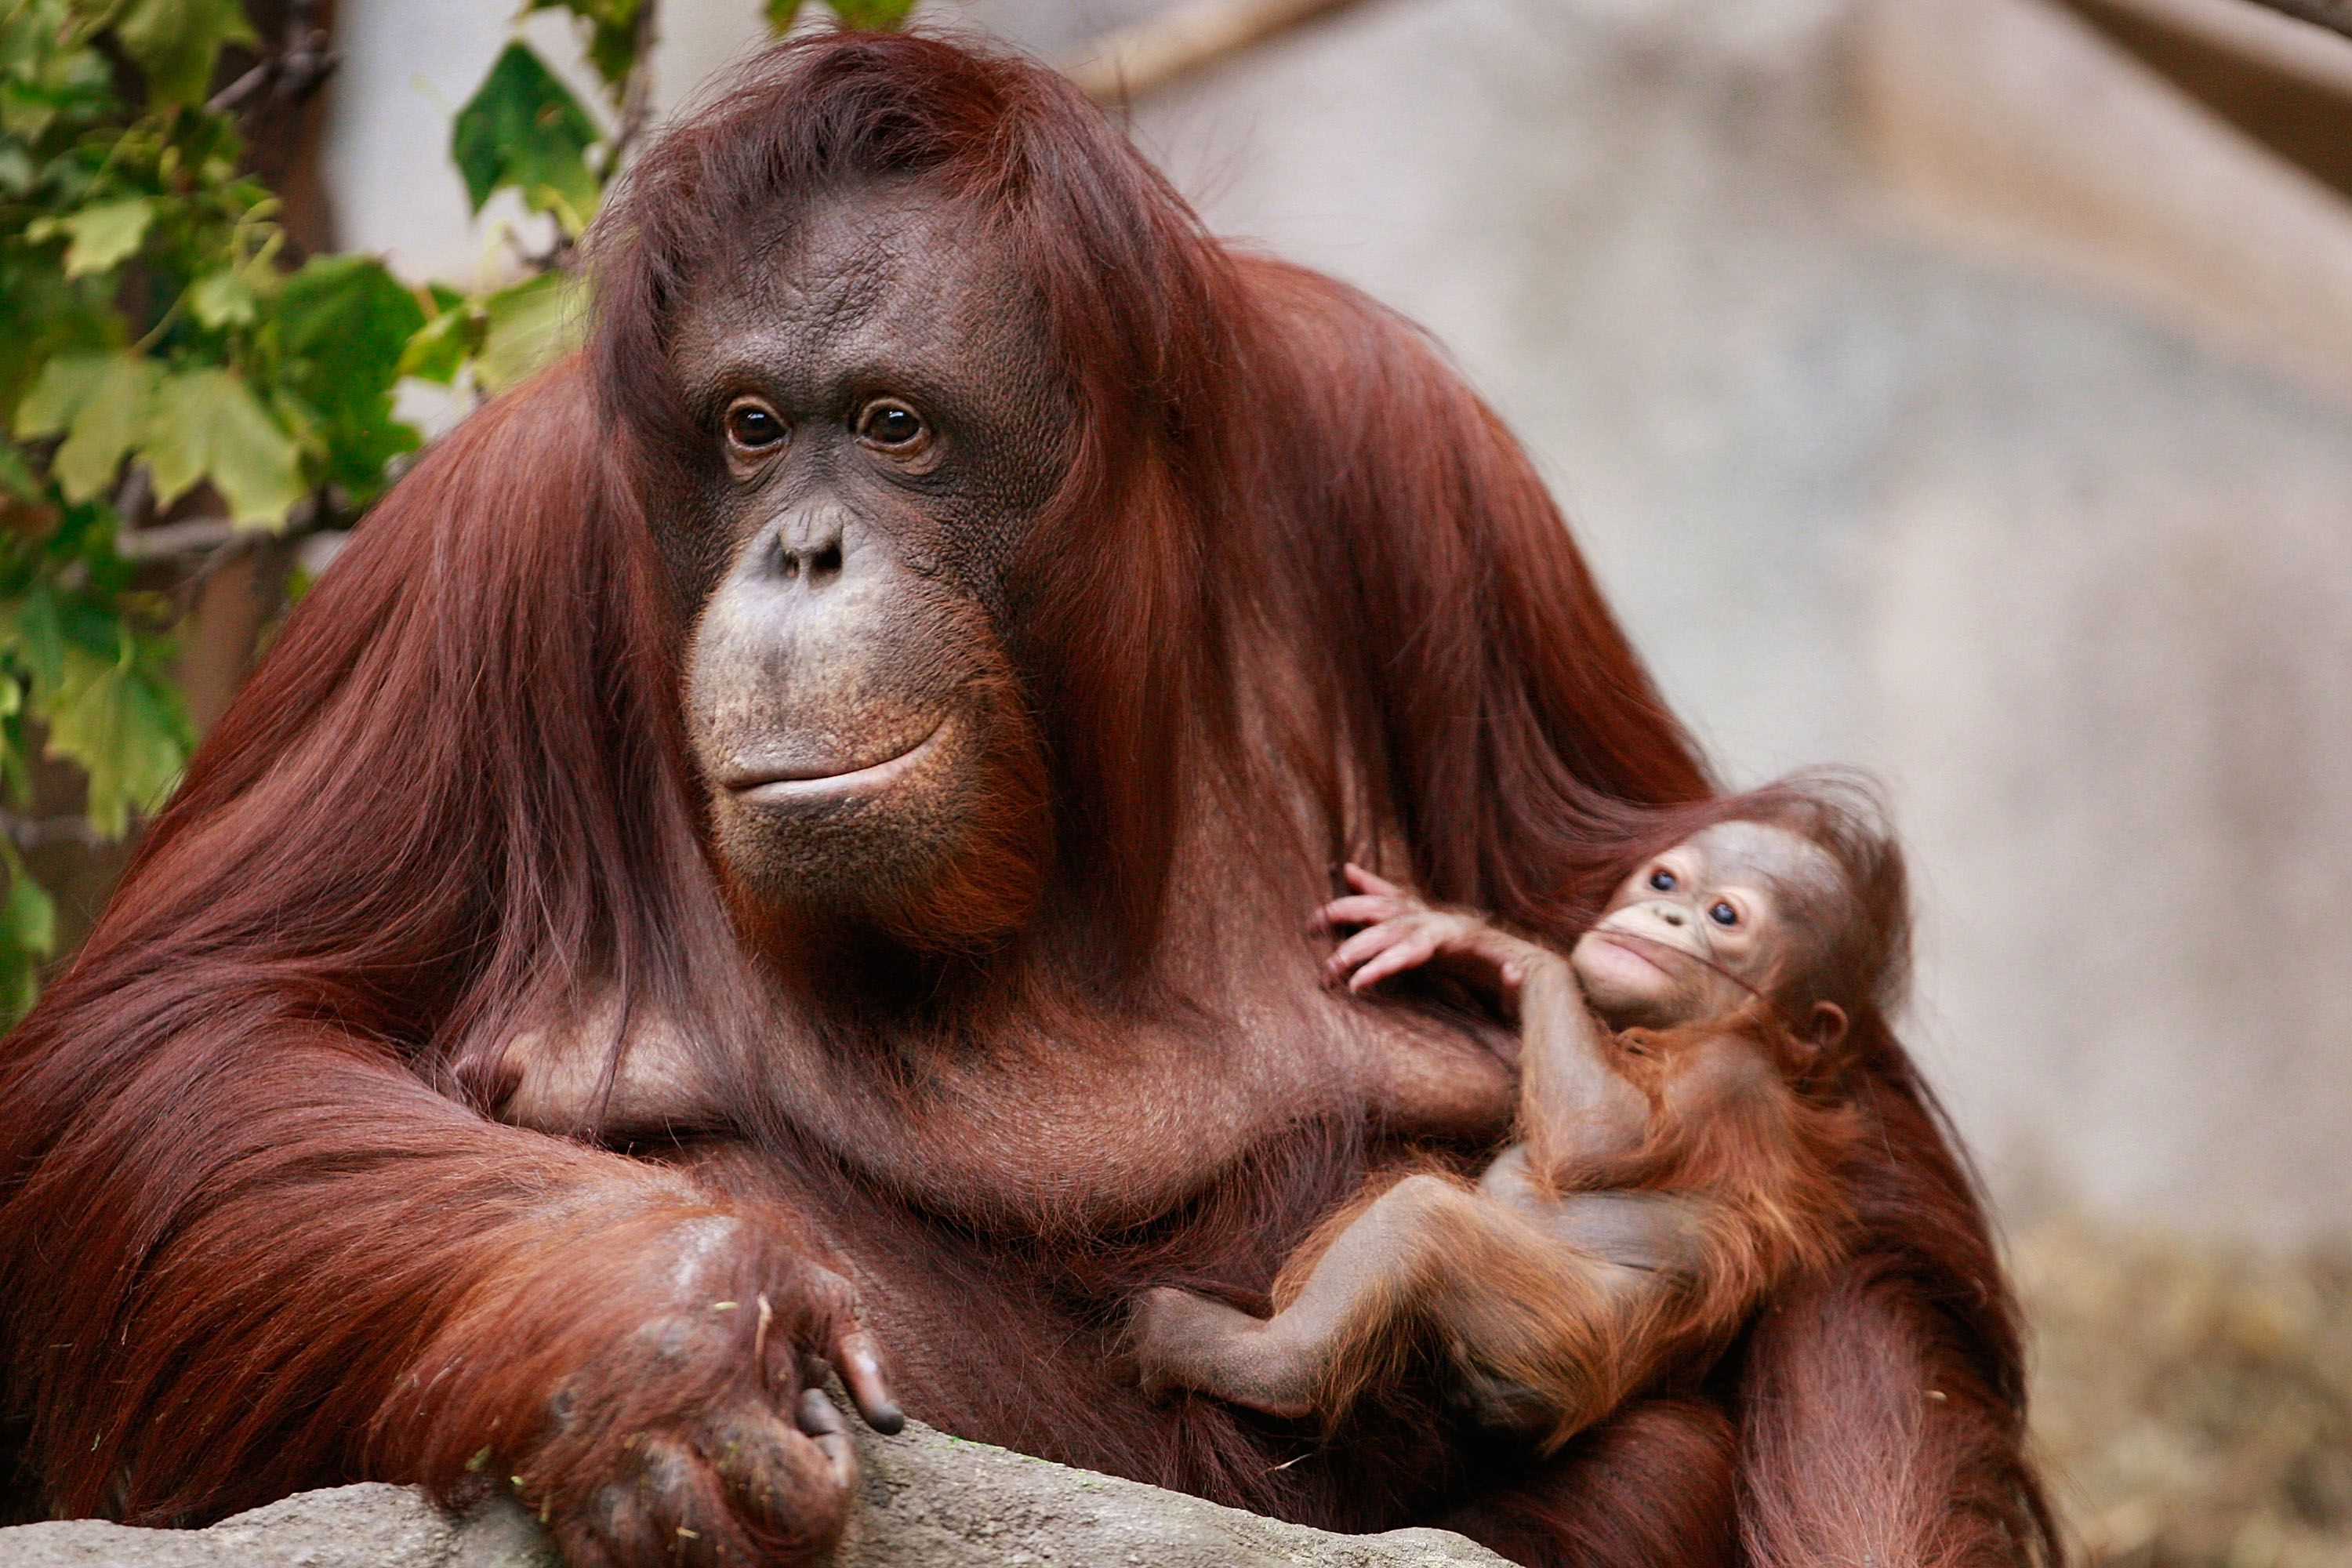 The Bornean Orang-utan is covered in patchy red